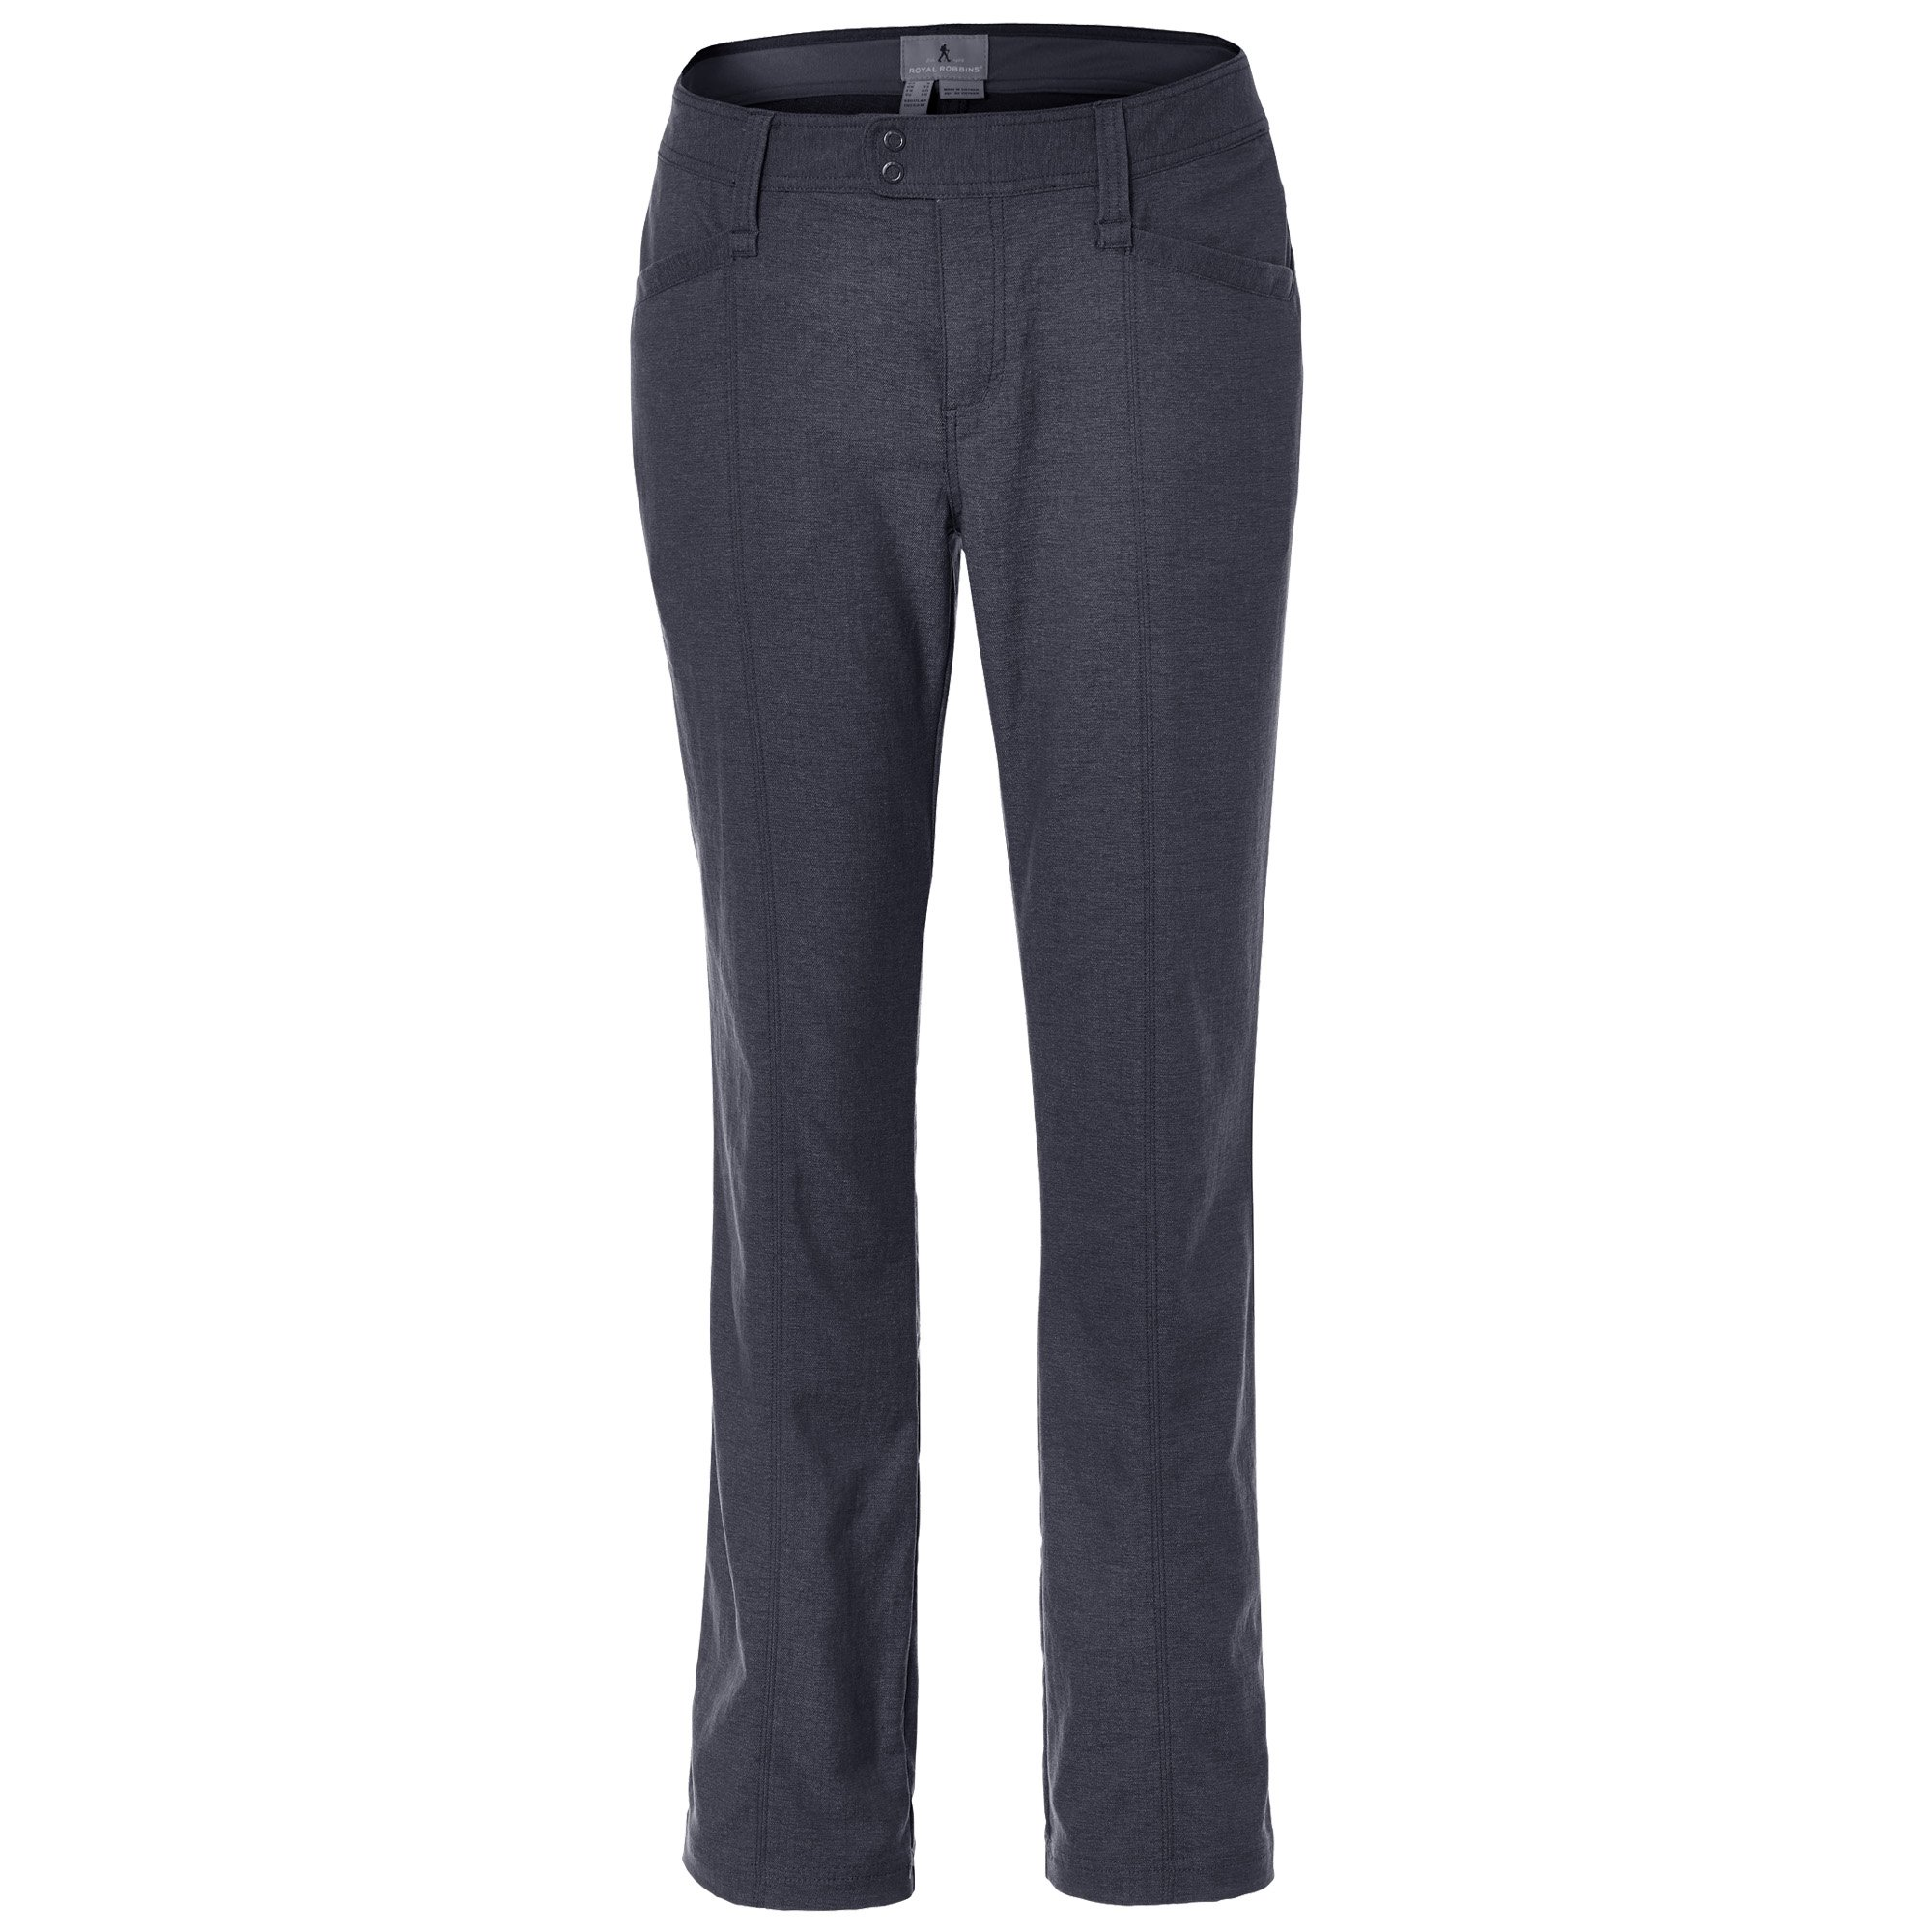 Royal Robbins Women's Herringbone Discovery Strider Pants,CHARCOAL,14-Regular